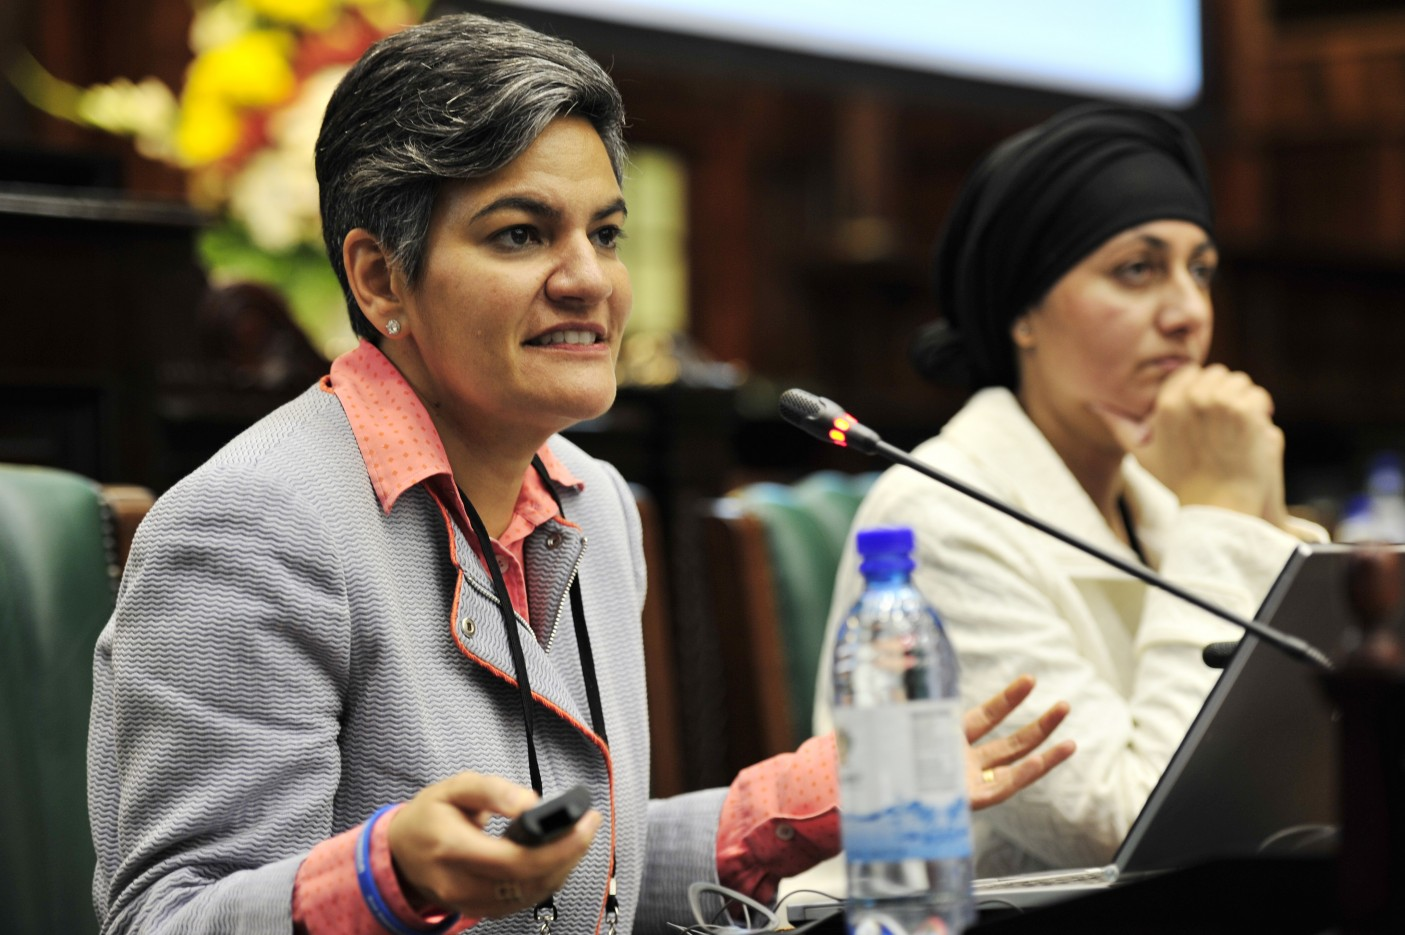 South Africa. The conference on Ensuring Everyone's Right to Nationality: The Role of Parliament in Preventing and Ending Statelessness,Cape Town, 26-27 November 2015. Co-organized by Parliament of South Africa, the Inter-Parliamentary Union and the United